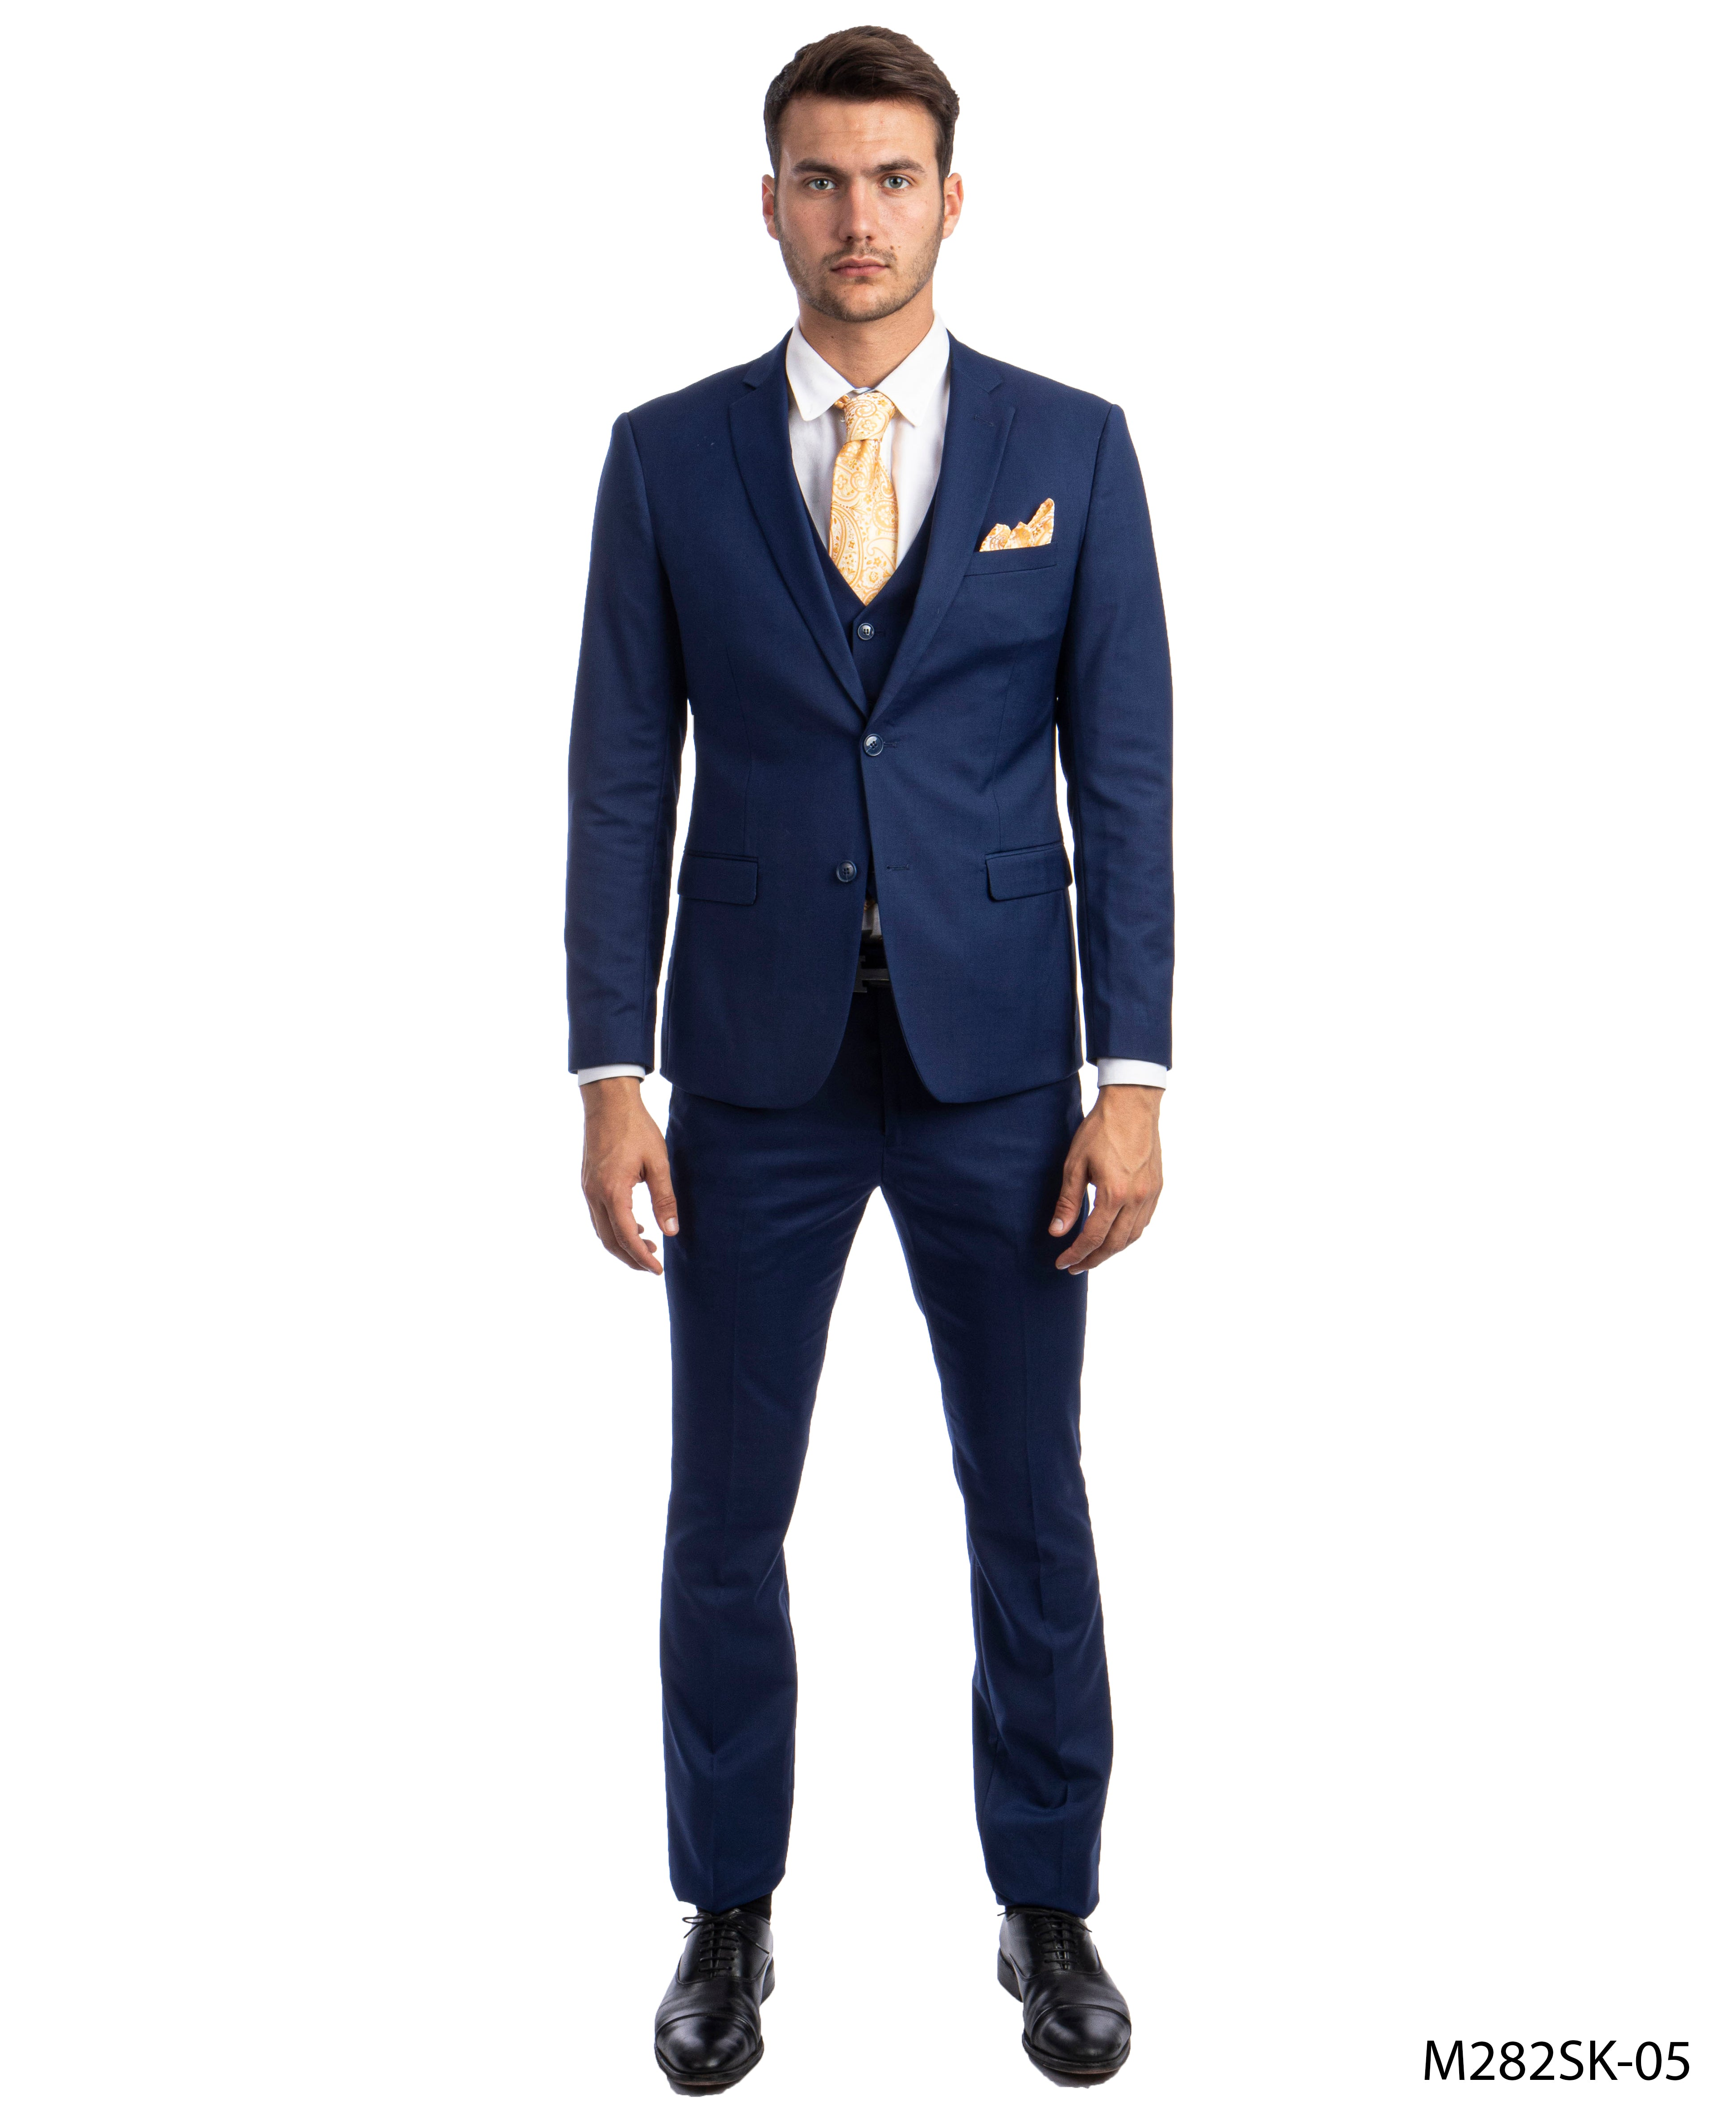 Indigo Suit For Men Formal Suits For All Ocassions